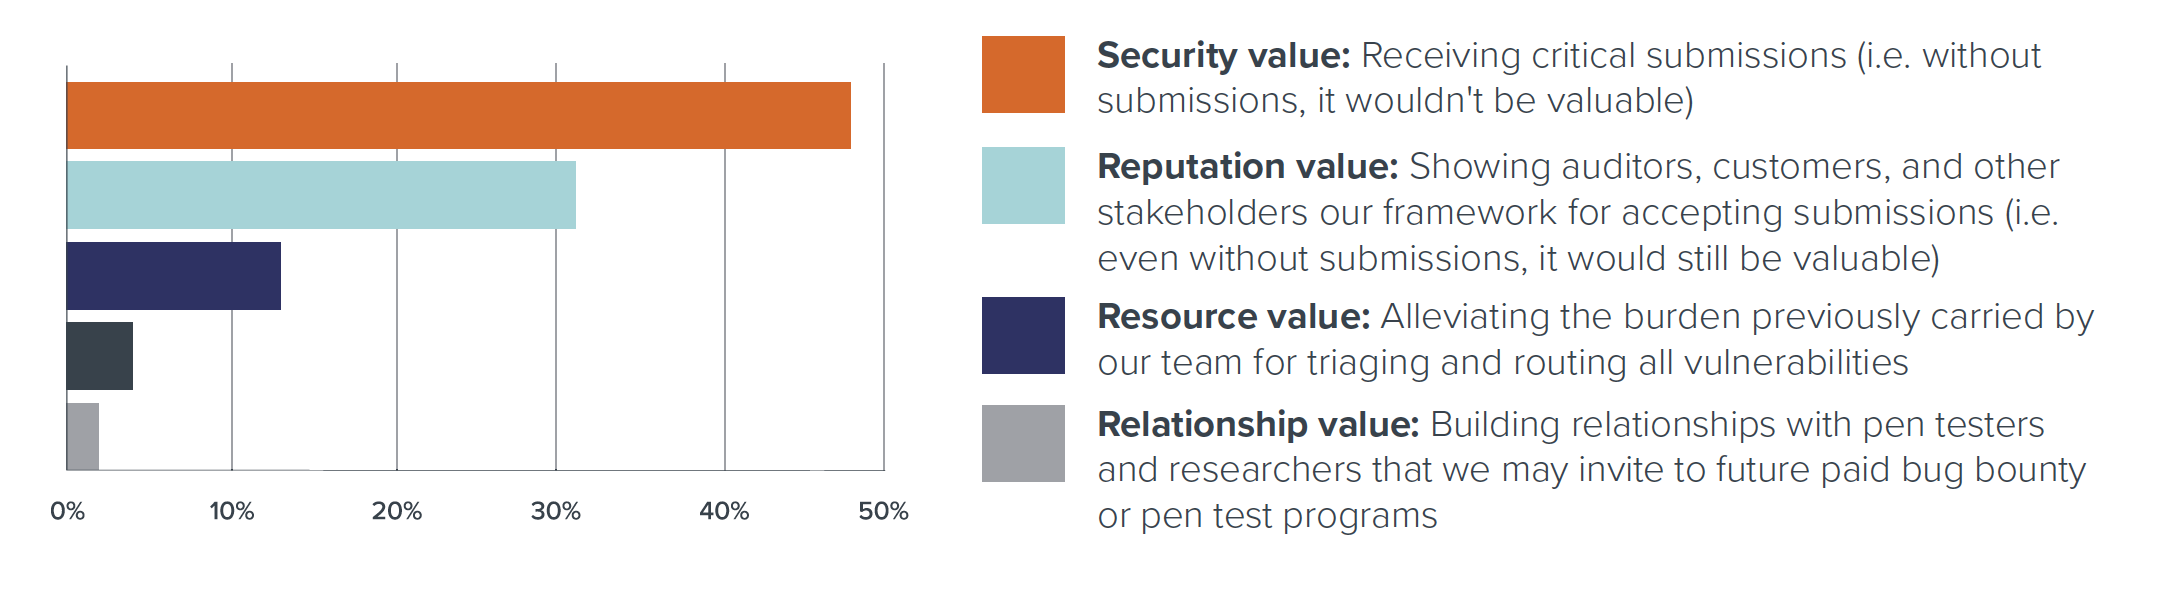 What do you believe is the main point of value for your vulnerability disclosure program?